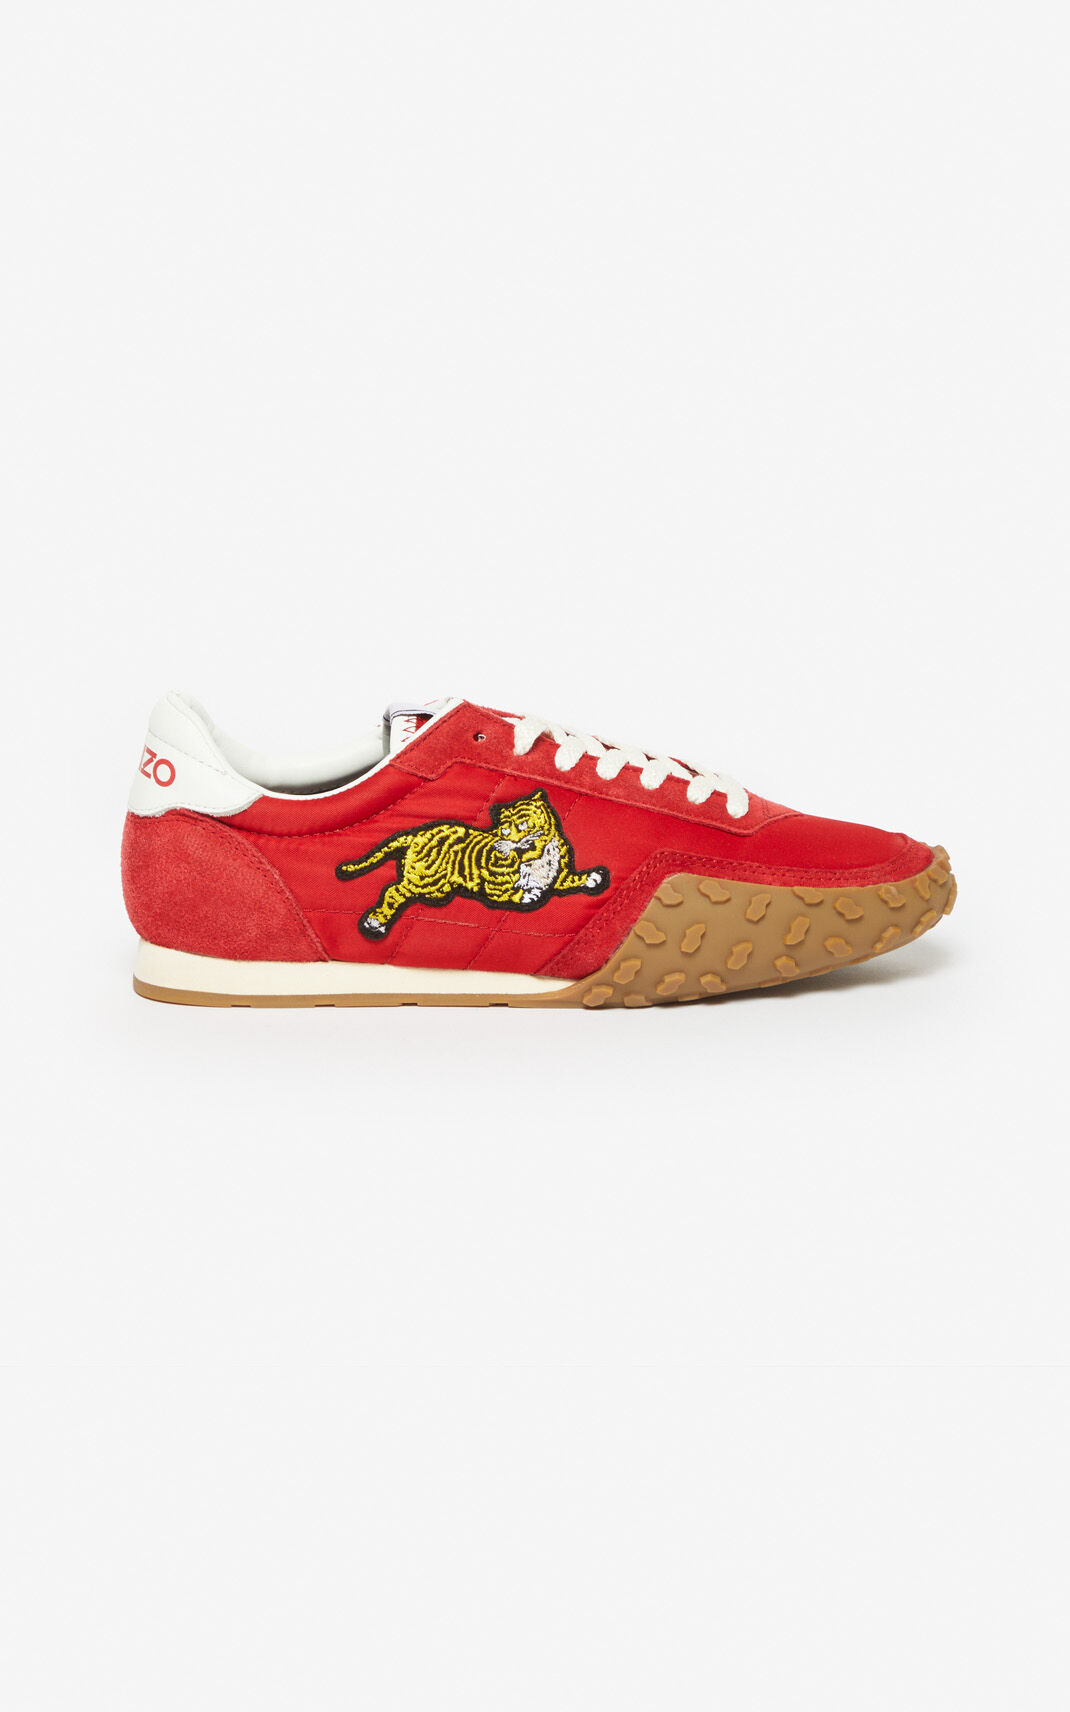 Kenzo Kenzo Déplacer Baskets - Rouge AcU8LqpM